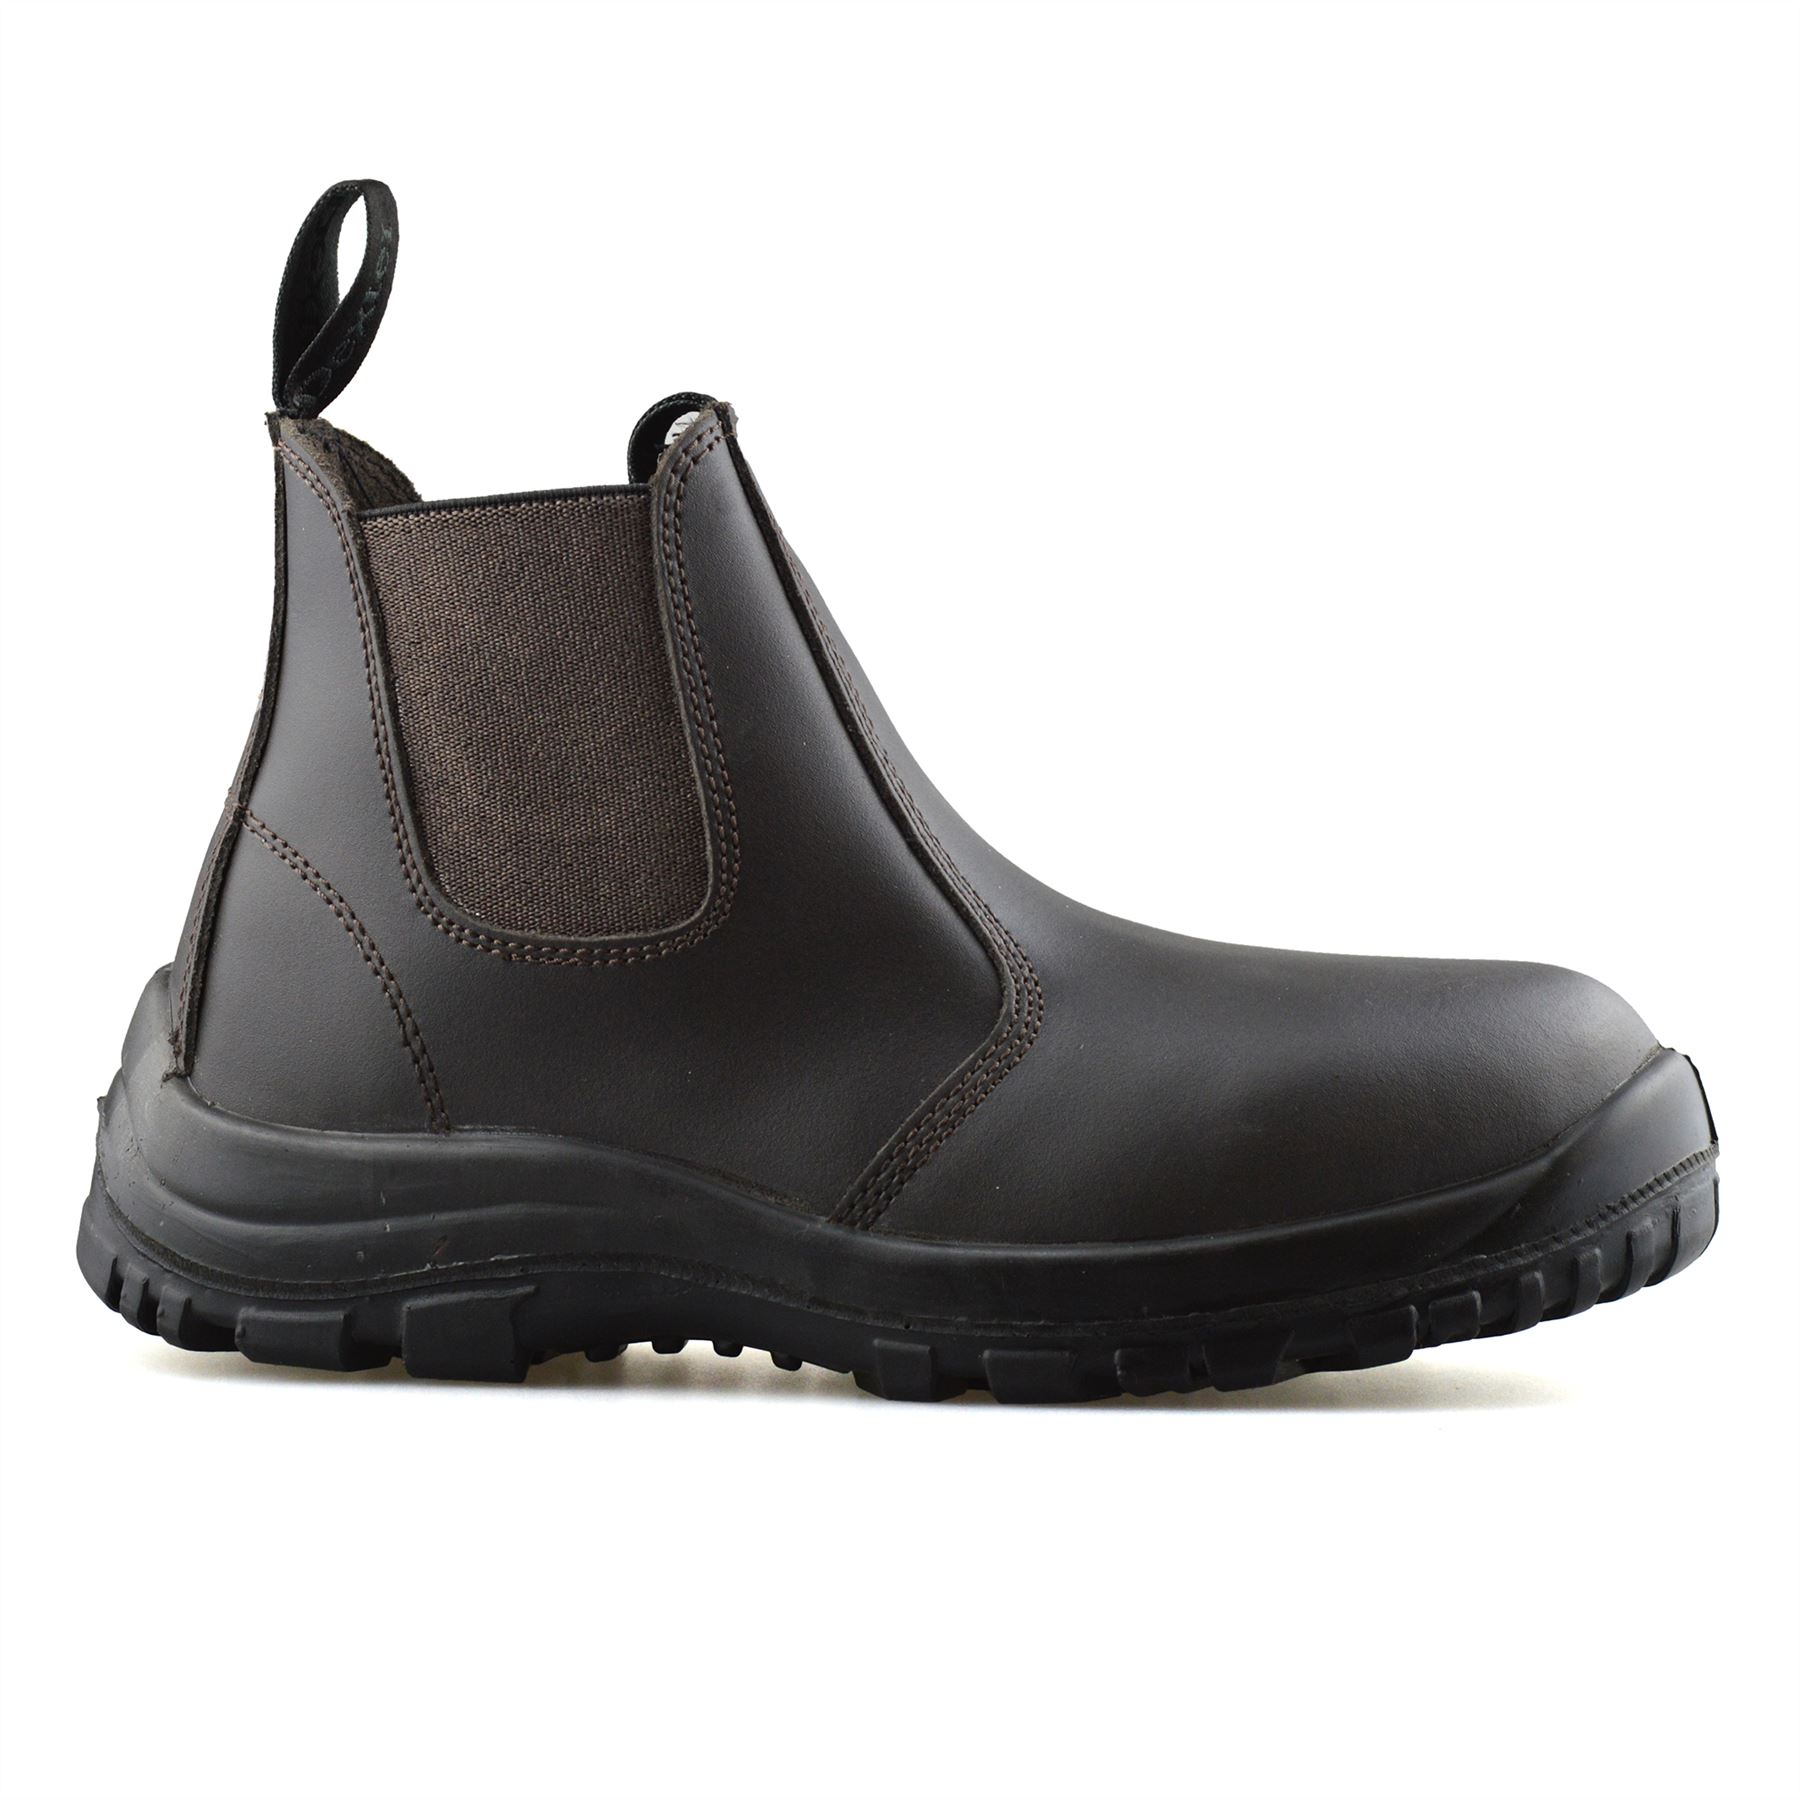 Mens-Leather-Wide-Fit-Chelsea-Ankle-Boots-Casual-Smart-Dealer-Work-Shoes-Size thumbnail 9